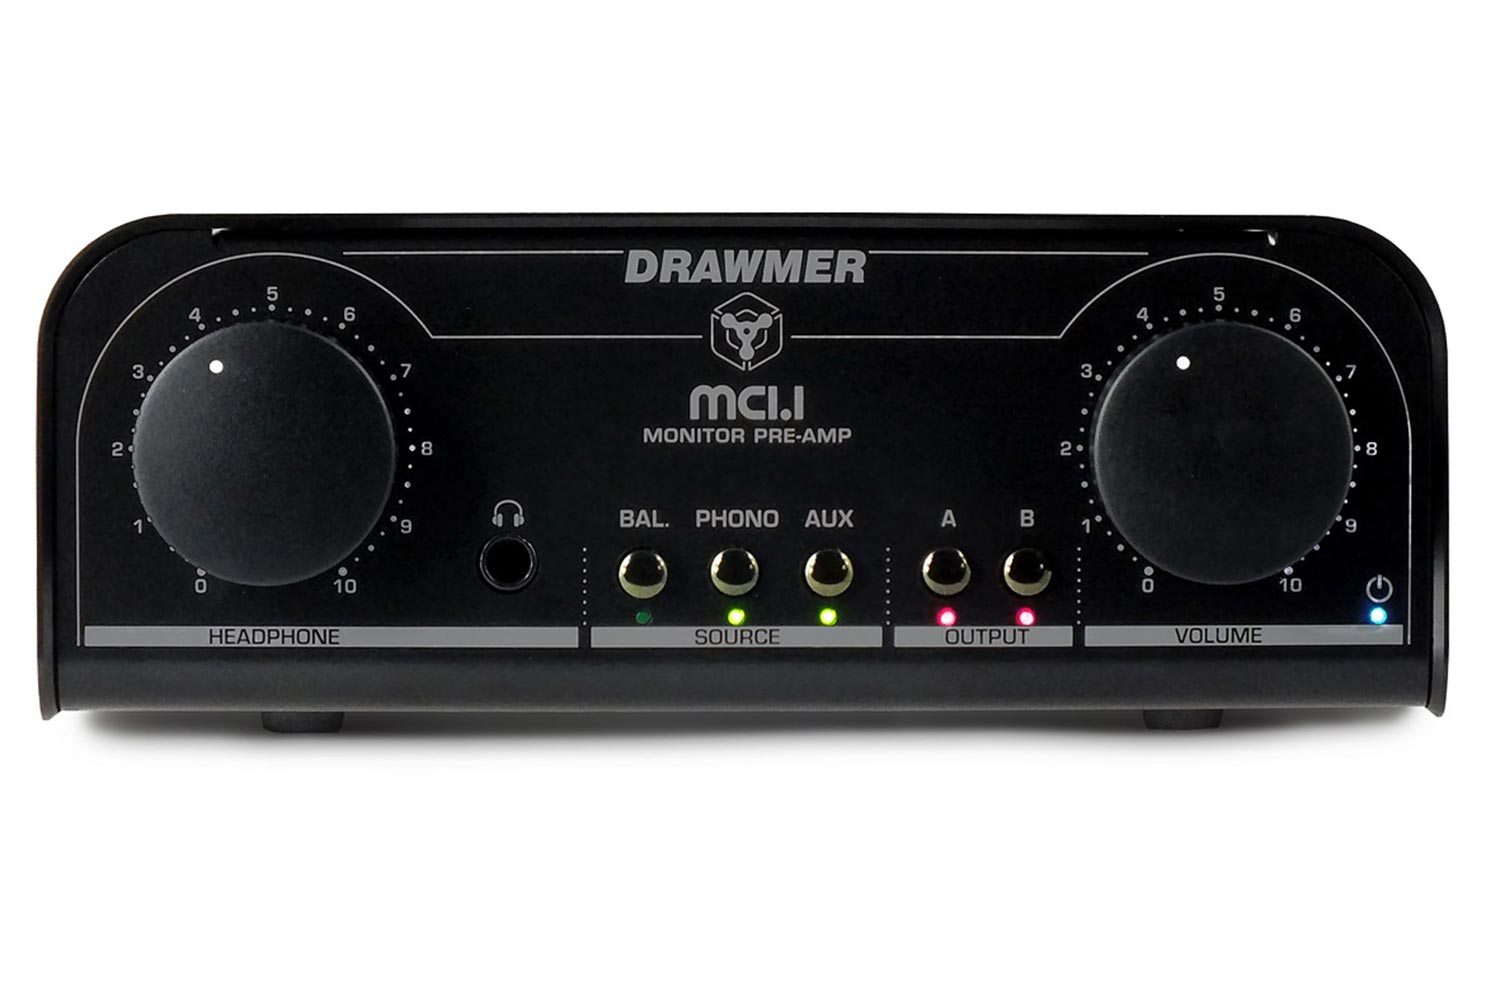 Drawmer-mc1.1-Front